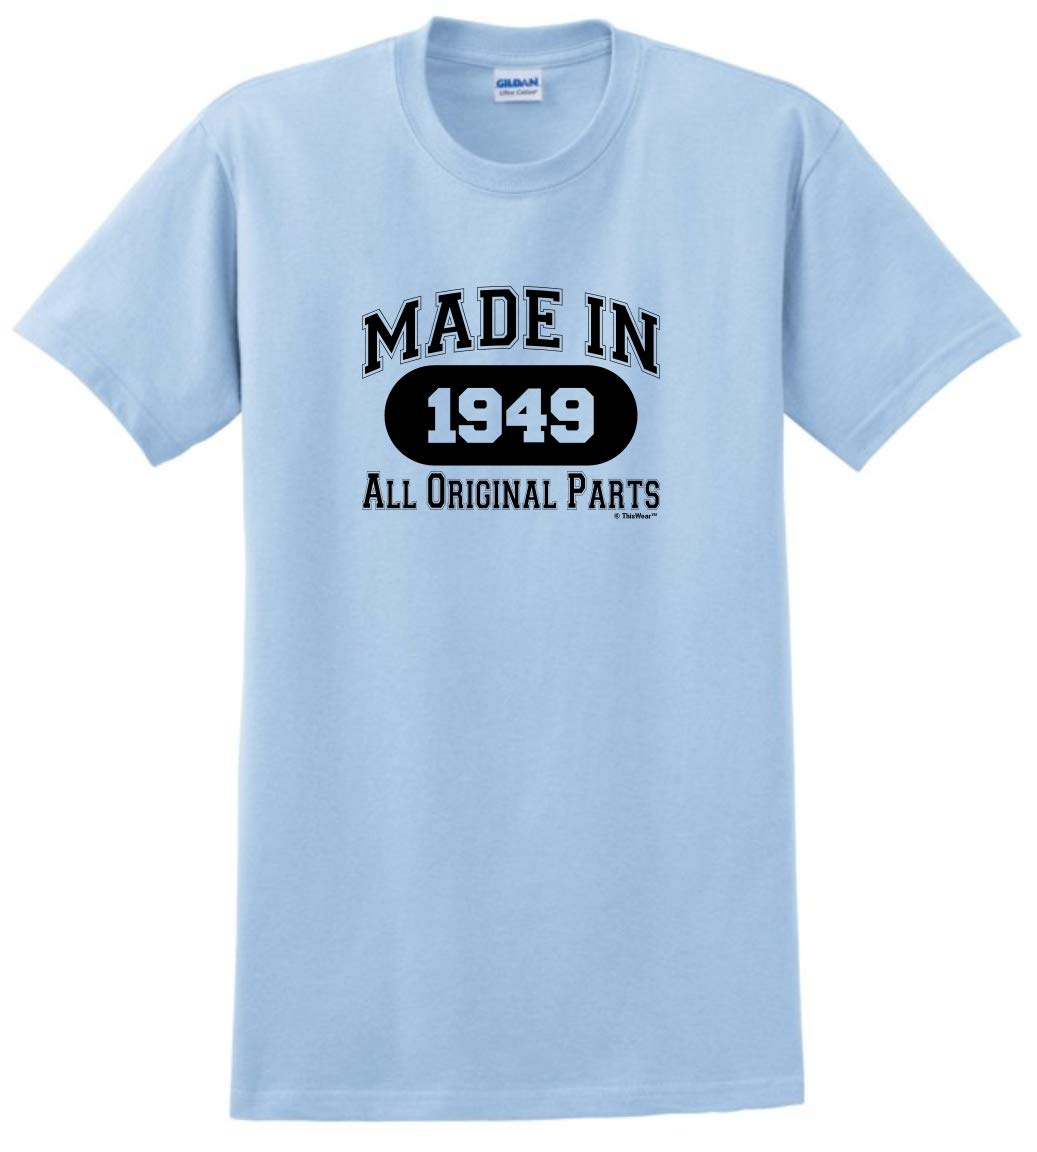 70th Birthday Gifts For Dad Gift Made 1949 All Original Parts T Shirt Medium Light Blue